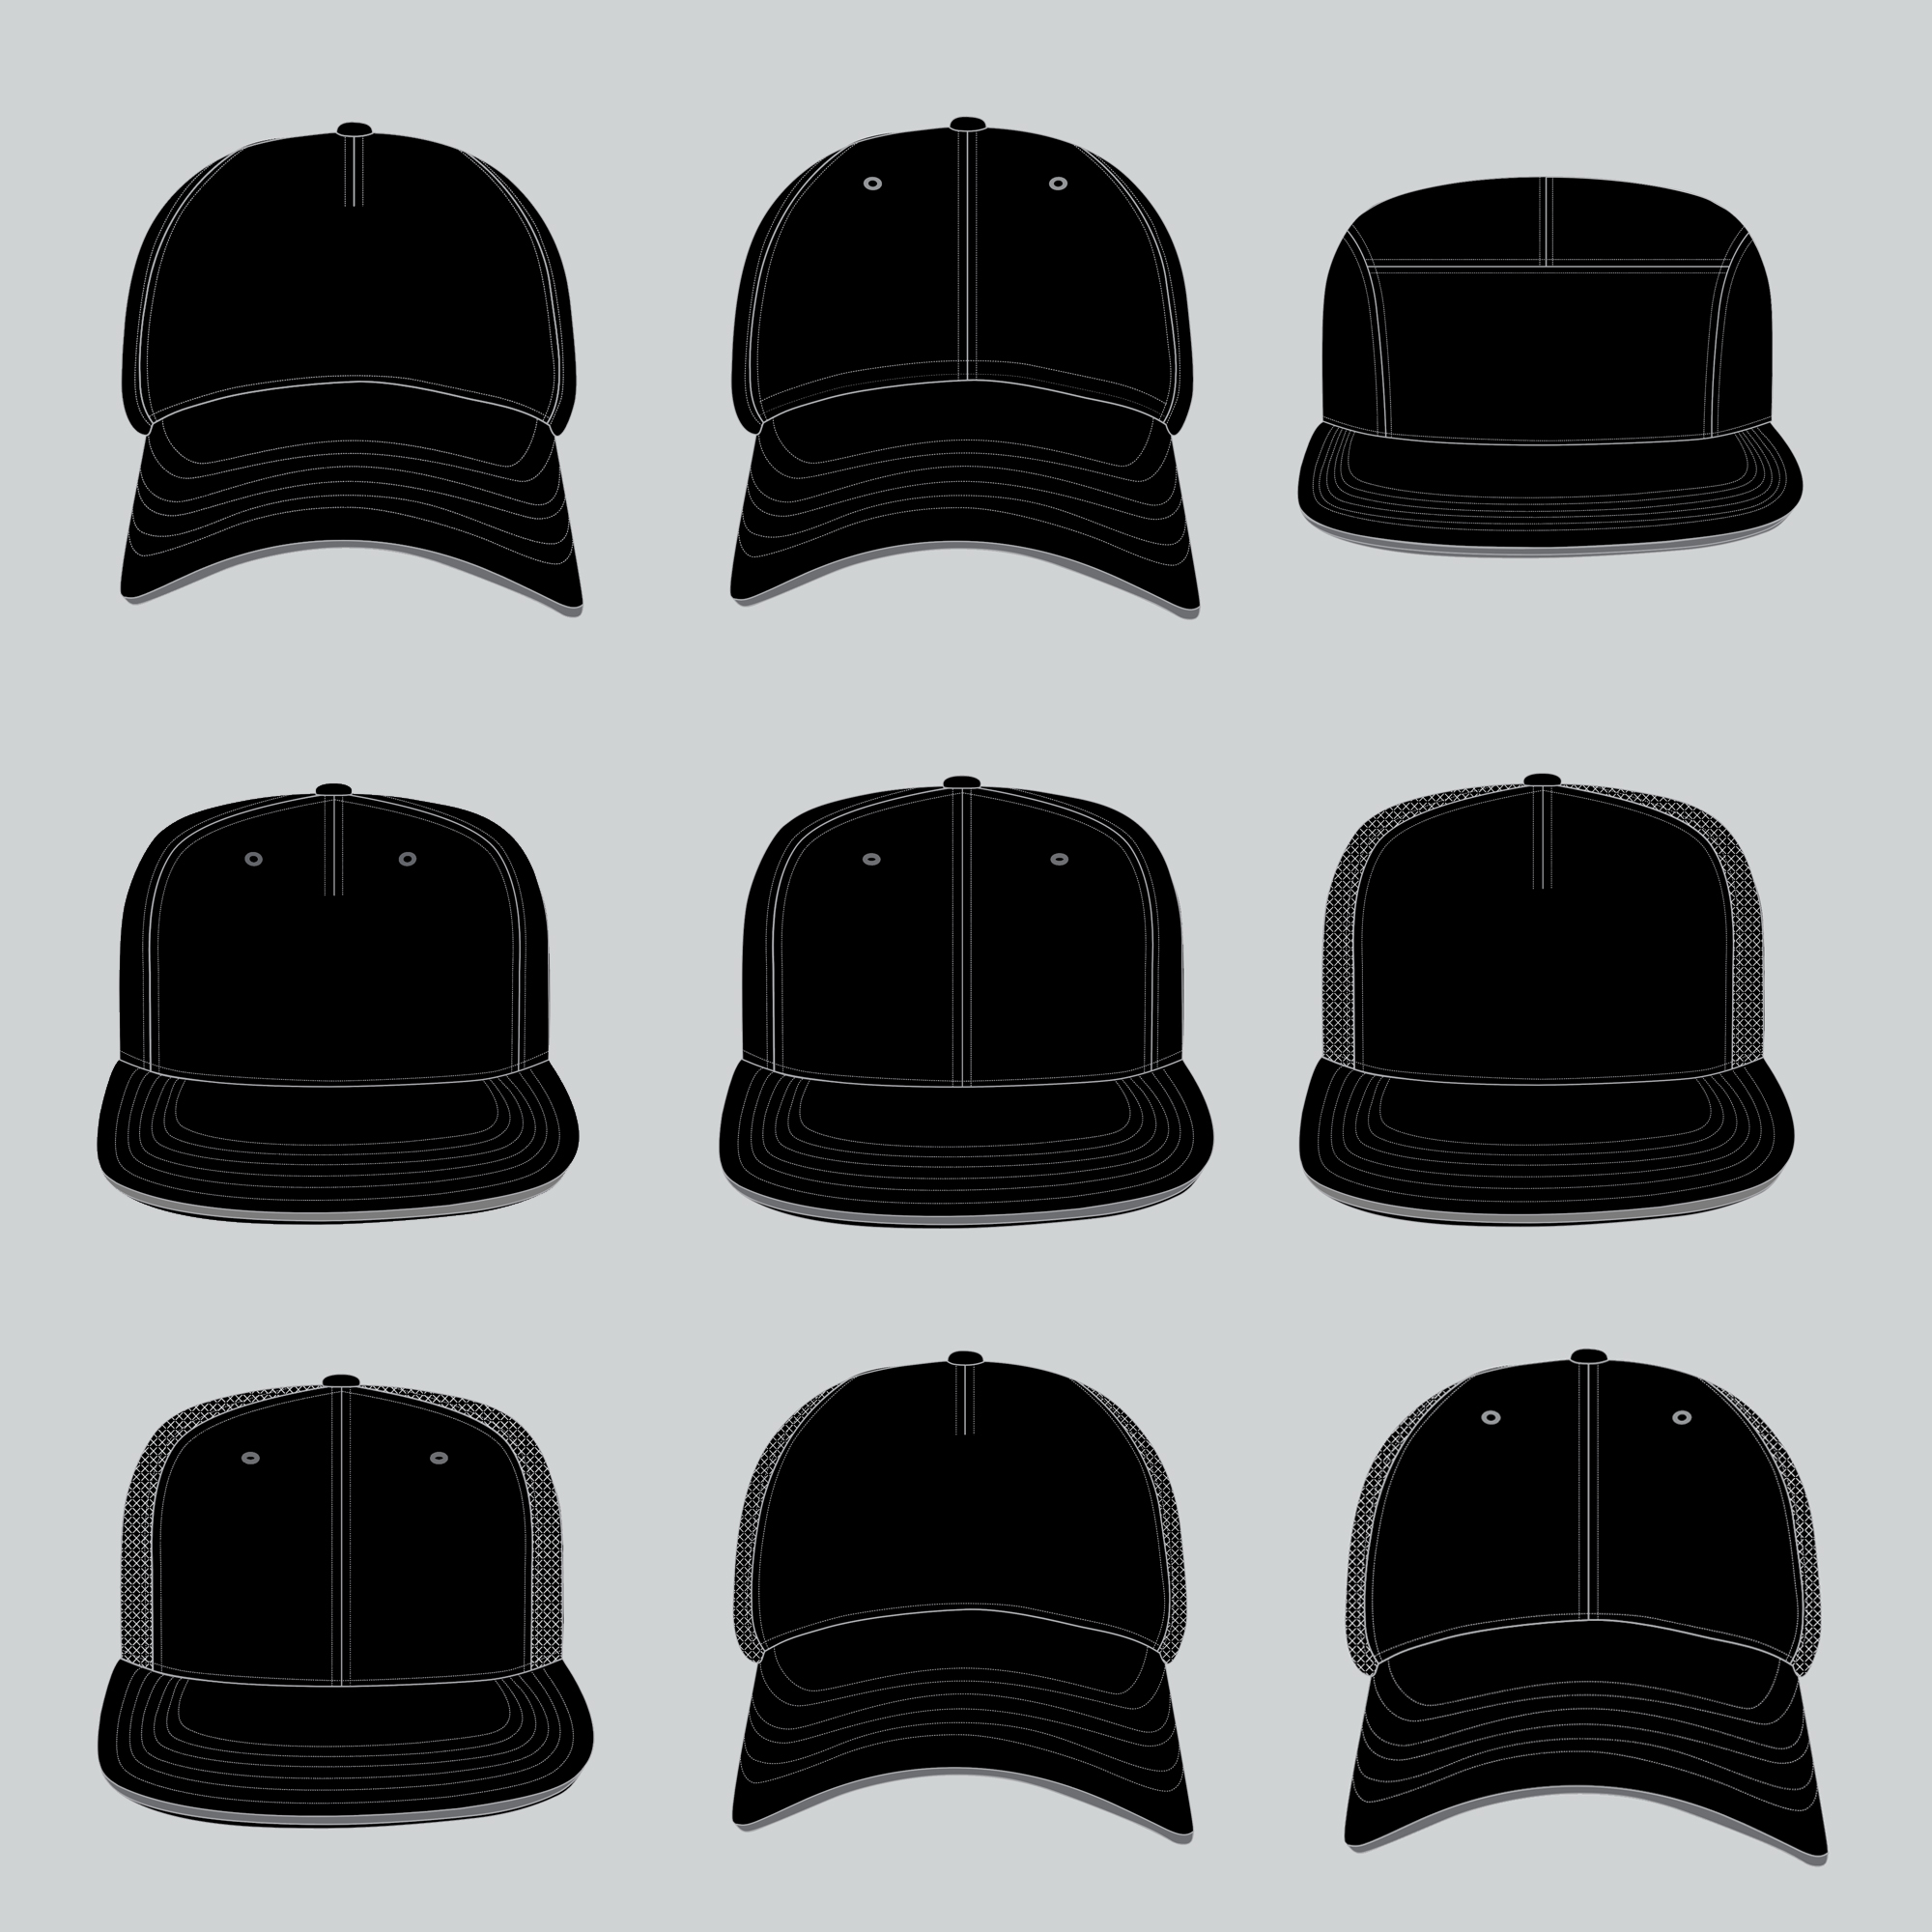 11 STYLES - BCF. 5-PANEL BASEBALL CAPBCS. 6-PANEL BASEBALL CAPBCD. 6-PANEL DAD HATBCC. 5-PANEL CAMPER HATSBF. 5-PANEL SNAPBACK CAPSBS. 6-PANEL SNAPBACK CAPTBF. 5-PANEL TRUCKER CAPTBS. 6-PANEL TRUCKER CAPTSF. 5-PANEL FLAT-BRIM TRUCKER CAPTSS. 6-PANEL FLAT-BRIM TRUCKER CAPTDS. 6-PANEL TRUCKER DAD HAT